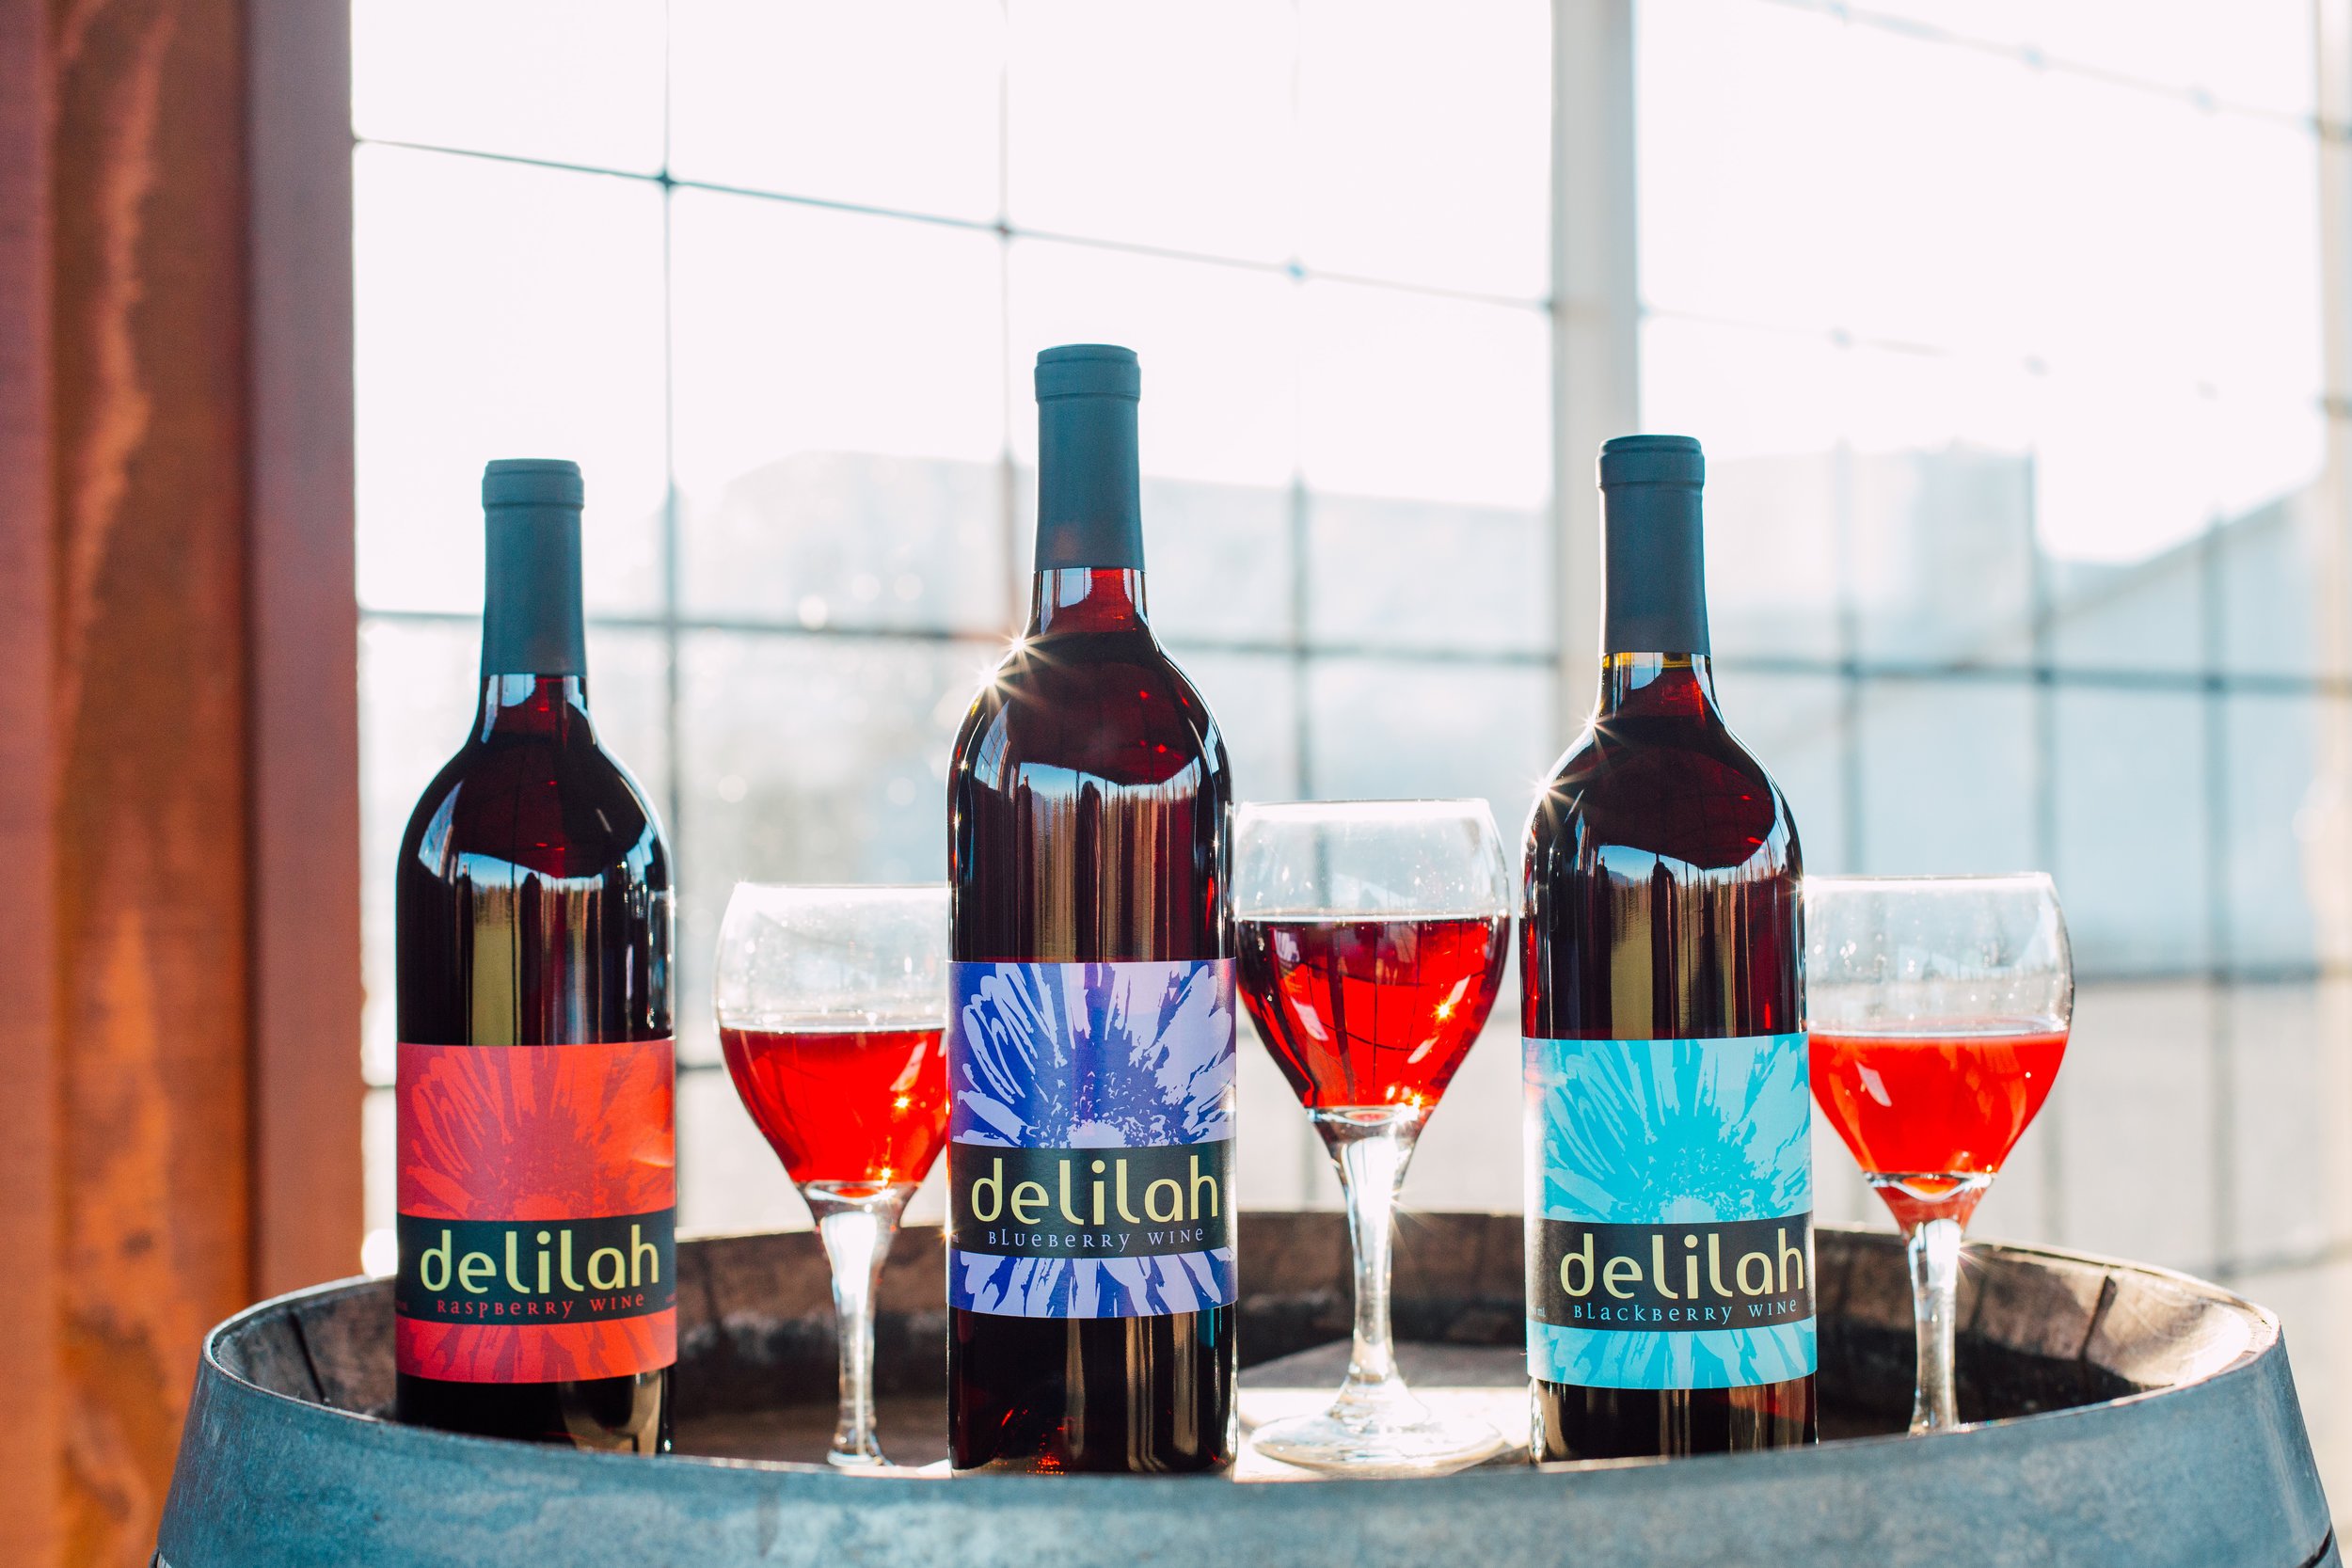 Artisan Fruit Wines - Delilah Raspberry Table Wine- 2019 Texas Intl. Wine Competition - Bronze· 2018 Monterey International Wine Competition-Platinum· 2012 Sommelier Challenge San Diego – Silver· 2011 Capital Wine Competition – Silver· 2009 San Francisco Chronicle Wine Competition – Silver· 2007 Washington State Wine Competition – Gold· Northwest Wine Summit – Silver· 2005 Dallas Morning New Wine Competition – Gold· 2005 New World Wine Competition – SilverDelilah Blueberry Table Wine- 2019 Texas Intl. Wine Competition - Bronze· 2018 World Wine Championships – Gold 91/100 - Exceptional· 2014 Finger Lakes International Wine Competition – Silver 2014 Northwest Wine Summit – SilverDelilah Blackberry Table Wine- 2019 Texas Intl. Wine Competition - Silver· 2018 Texas Int. Wine Competition -Silver· 2018 Monterey International Wine Competition-Silver· 2018 Tasters Guild Award--Silver· 2011 Capital Wine Competition – Silver· 2006 Tri-Cities Wine Festival – Gold· 2006 Tri-Cities Wine Festival – Best in Class· 2004 Dallas Morning News Wine Competition – Silver